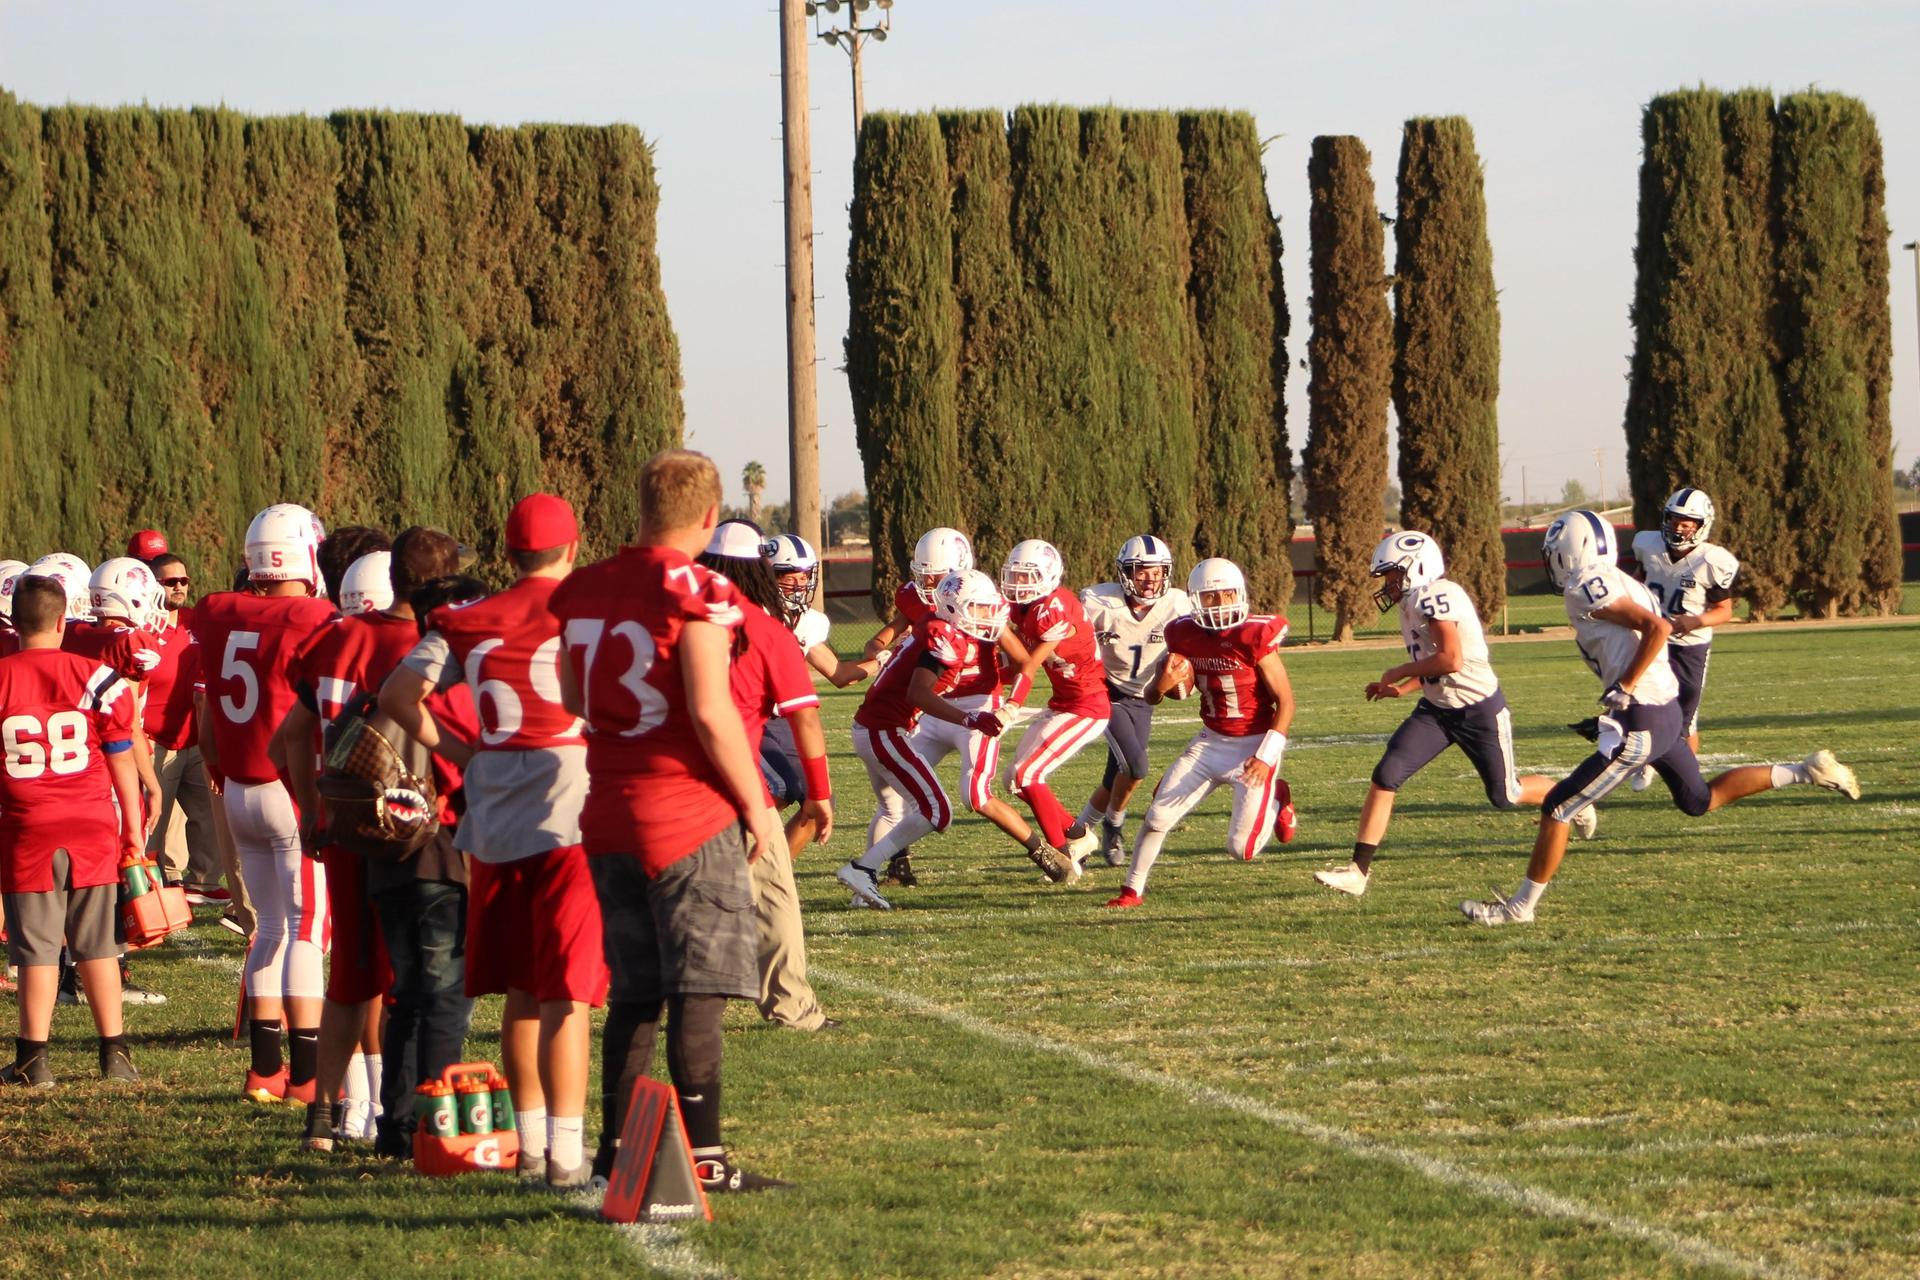 Junior Varsity boys playing football